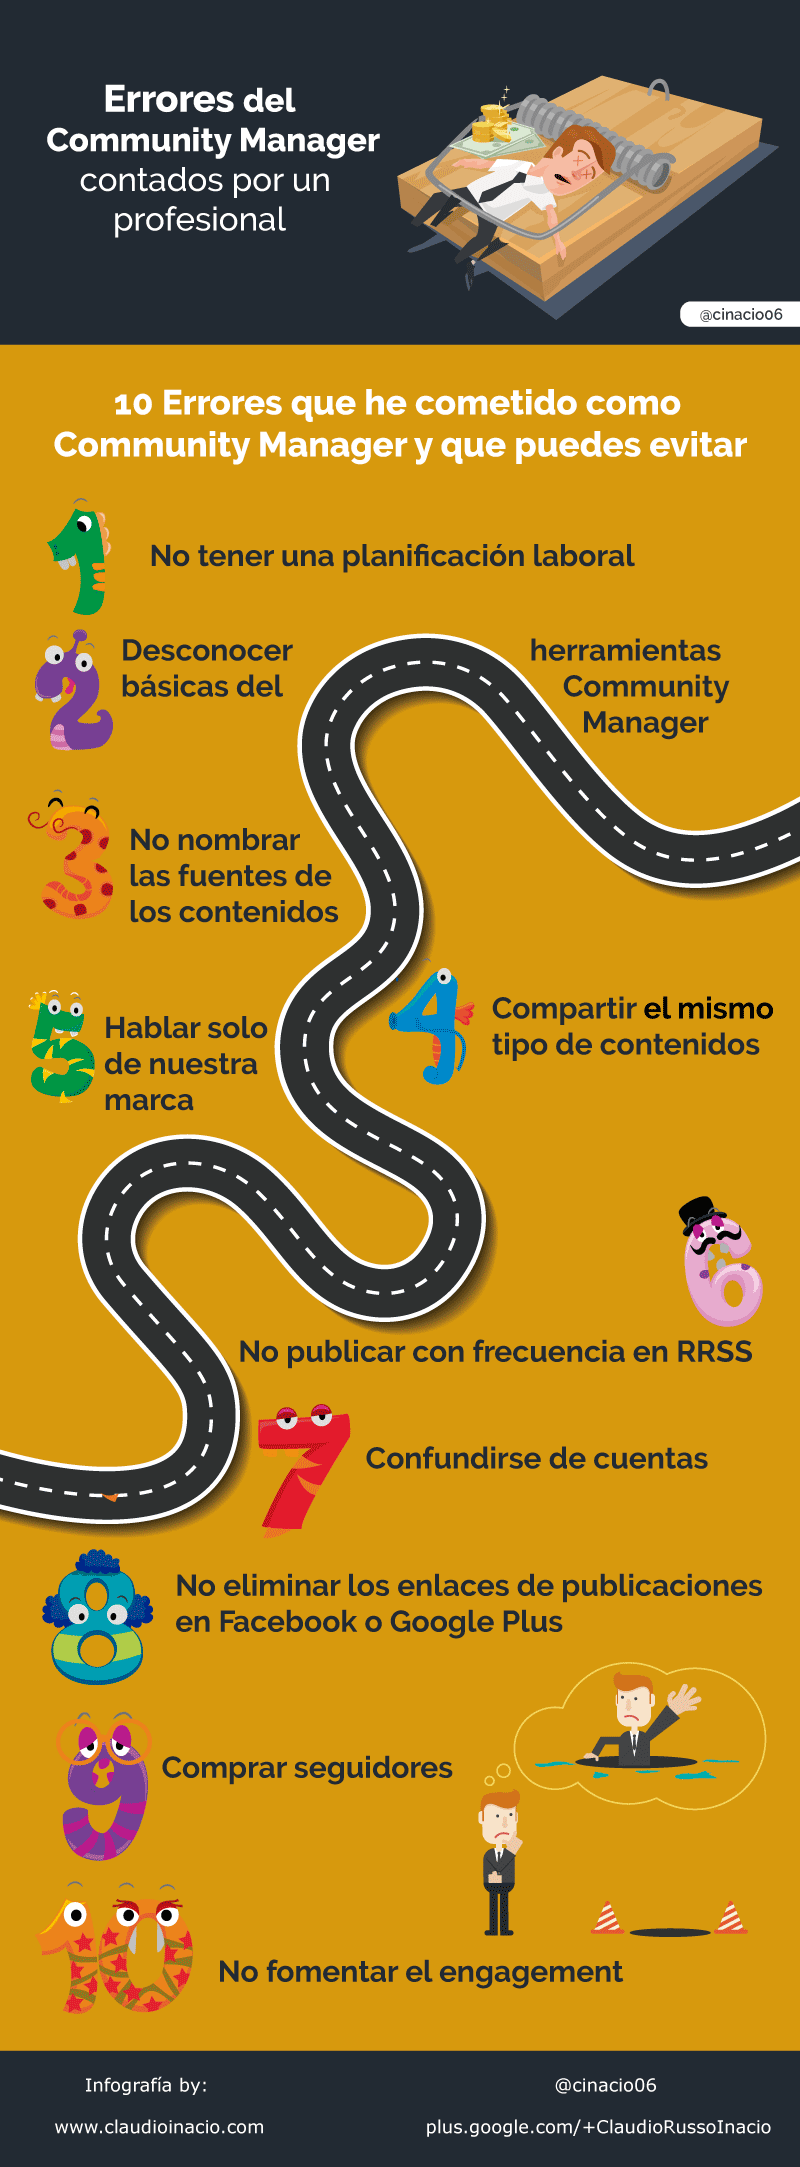 10-errores-del-Community-Manager-infografia